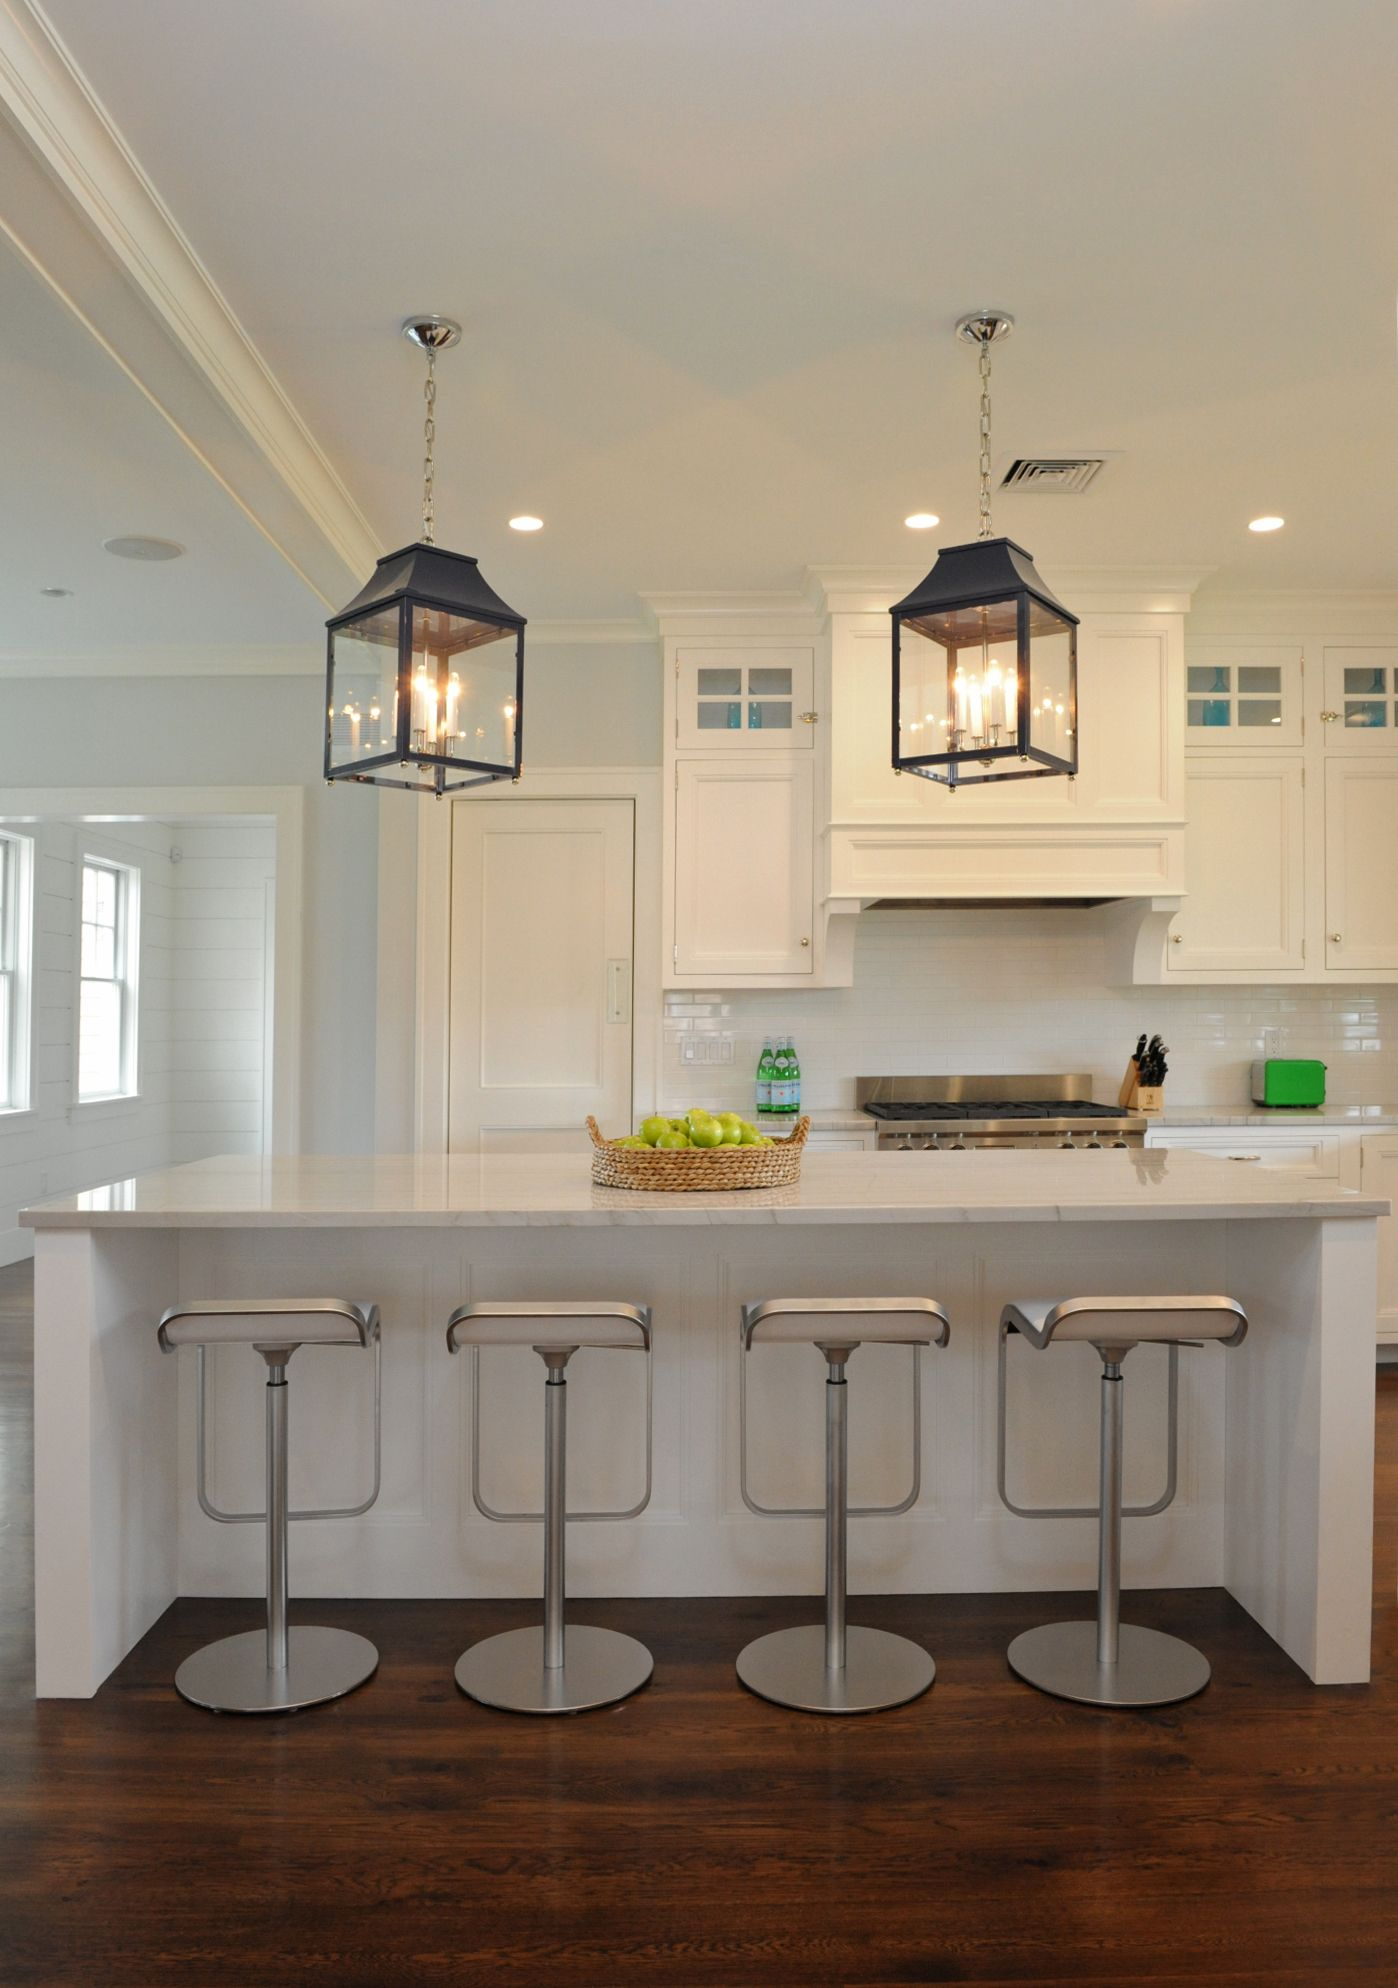 Kitchen Cabinets To Ceiling With Glass Oomph Lanterns Nina Liddle Design Nantucket Love The